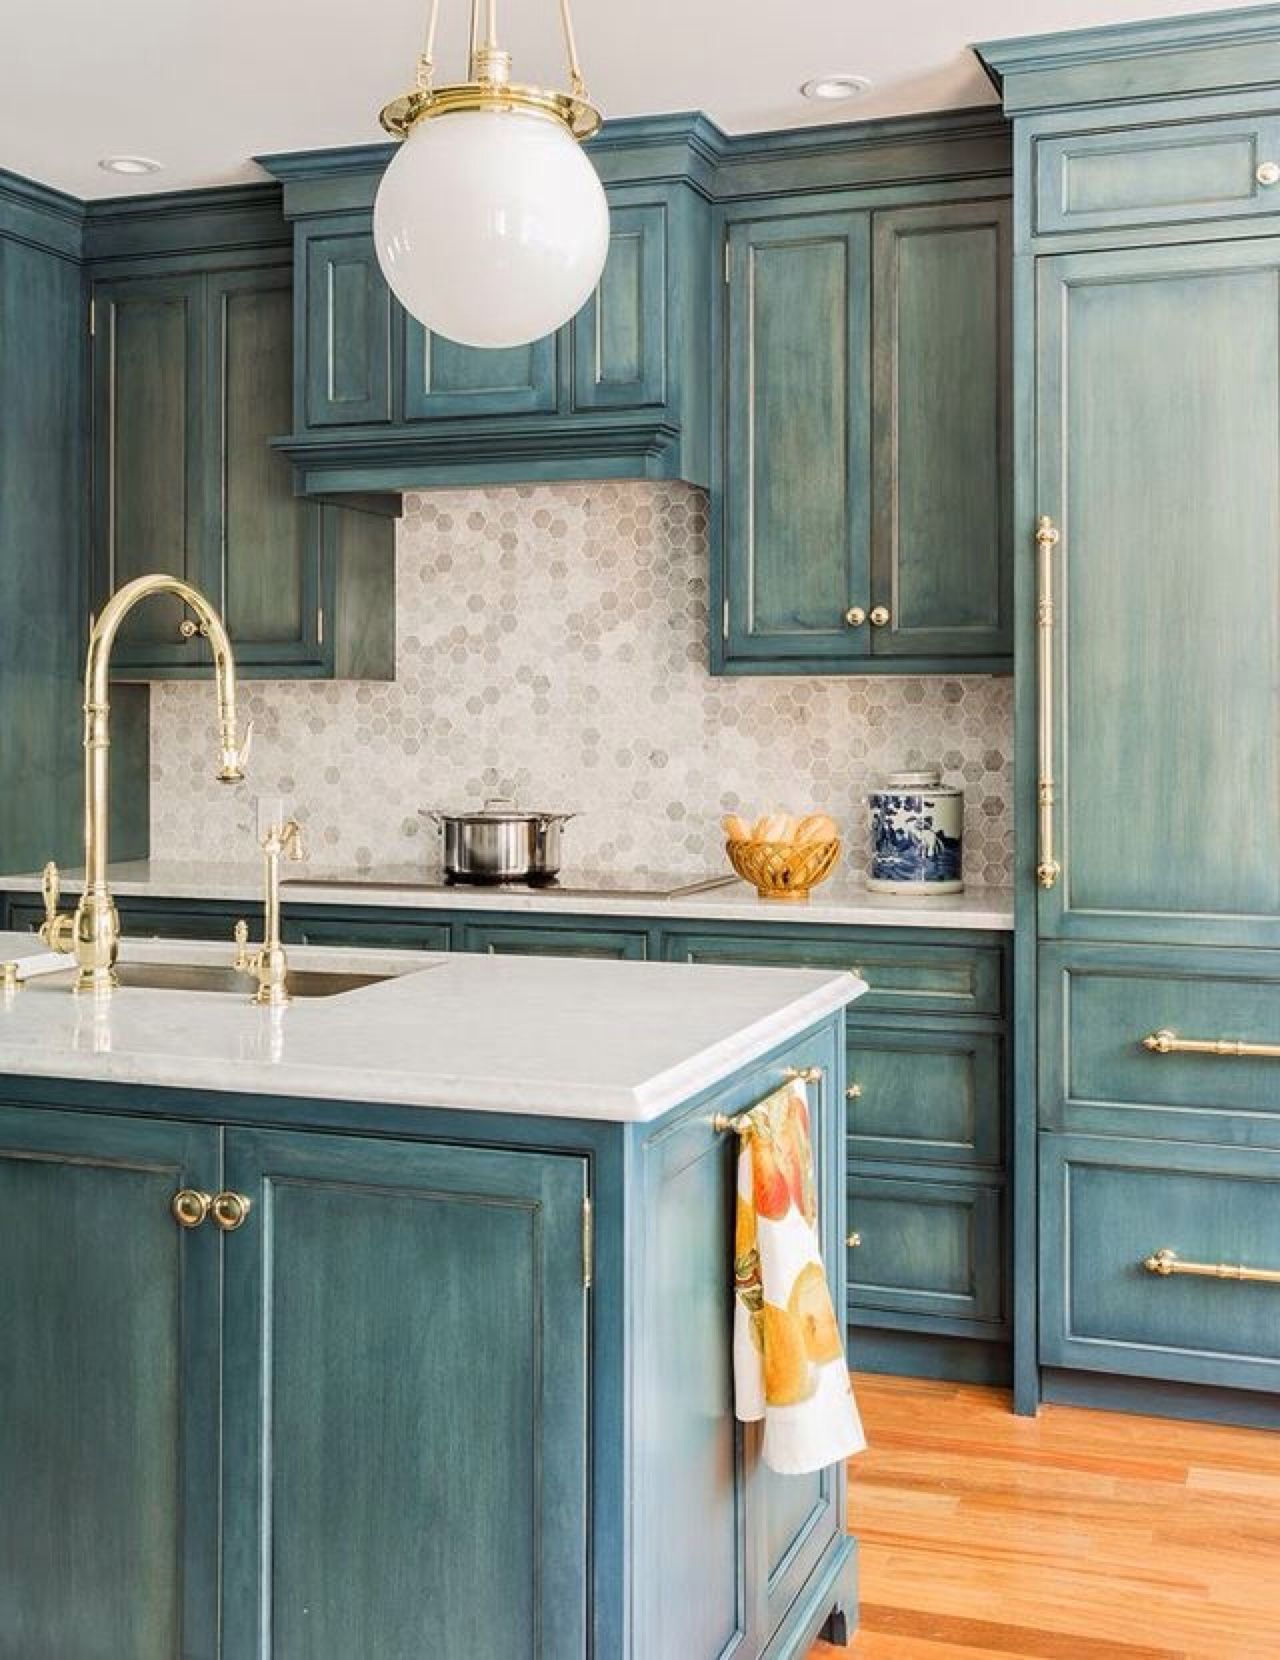 50 Modern Kitchen Ideas You Ll Fall In Love With Kitchen Cabinet Colors Blue Kitchen Cabinets Kitchen Design